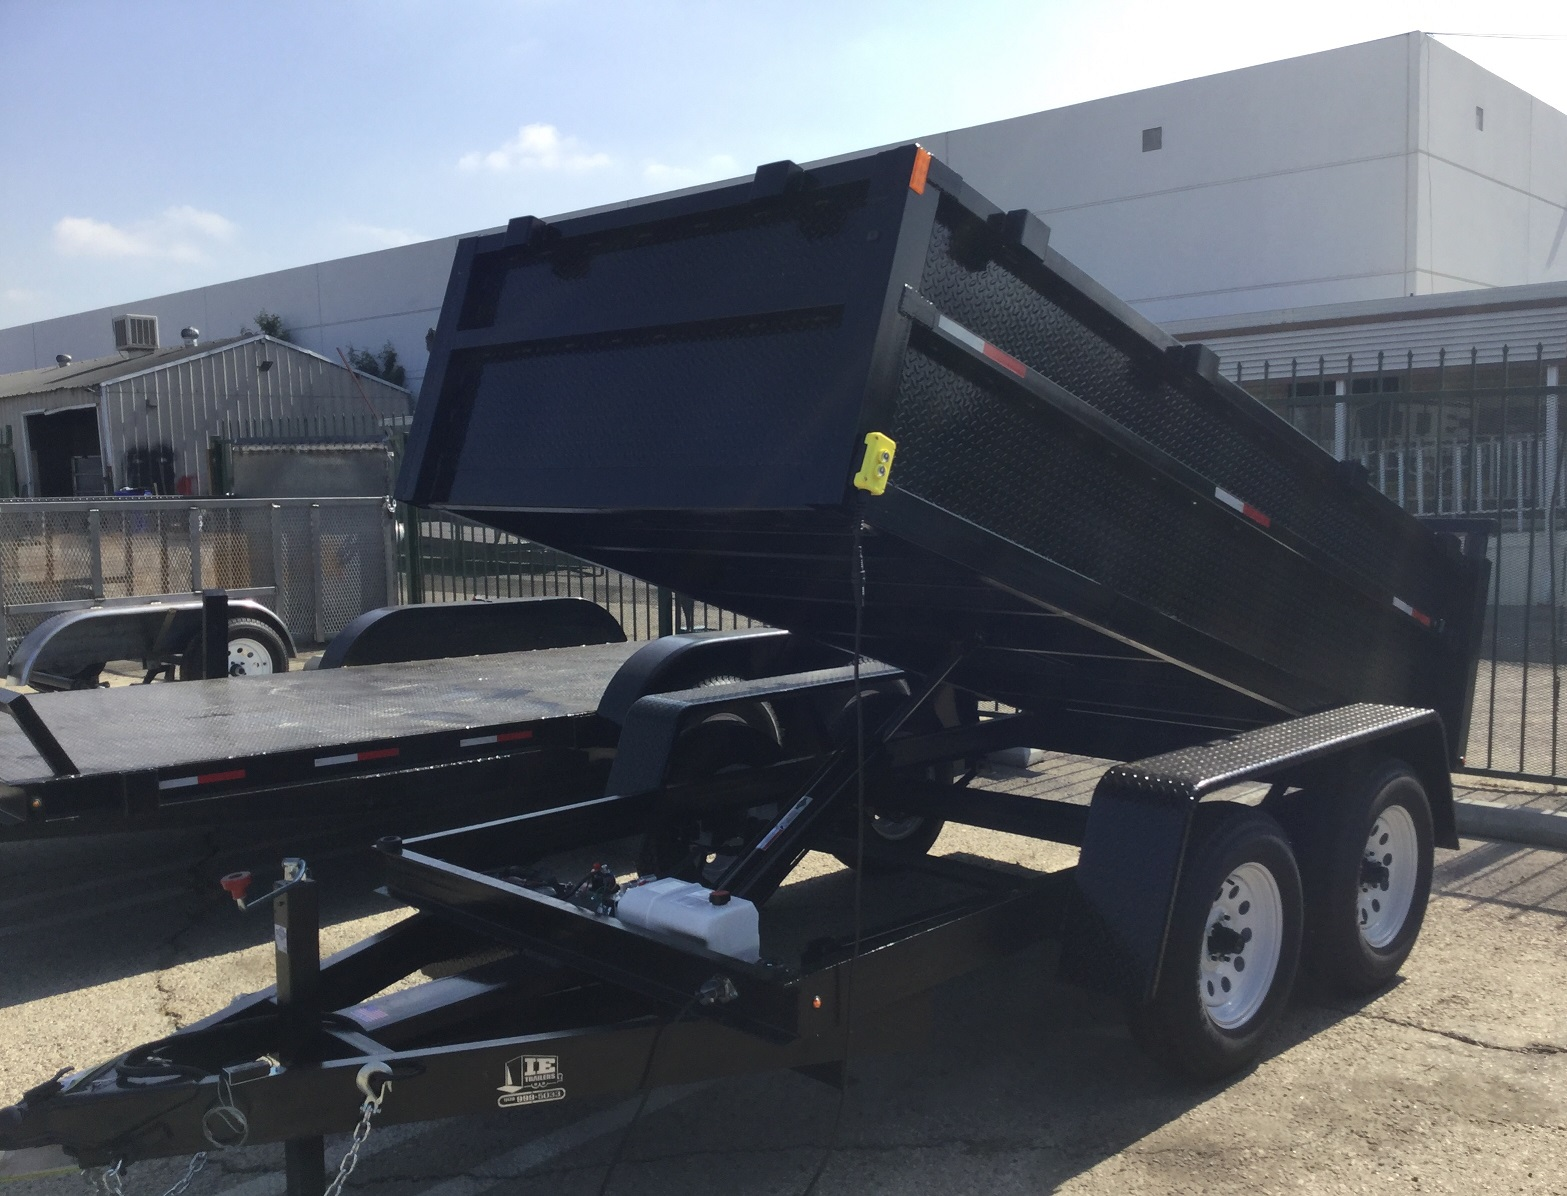 7000GVWRTrailer weight 2400lb2 516 ball needed5 ft width inside box 79 to 80 fender to